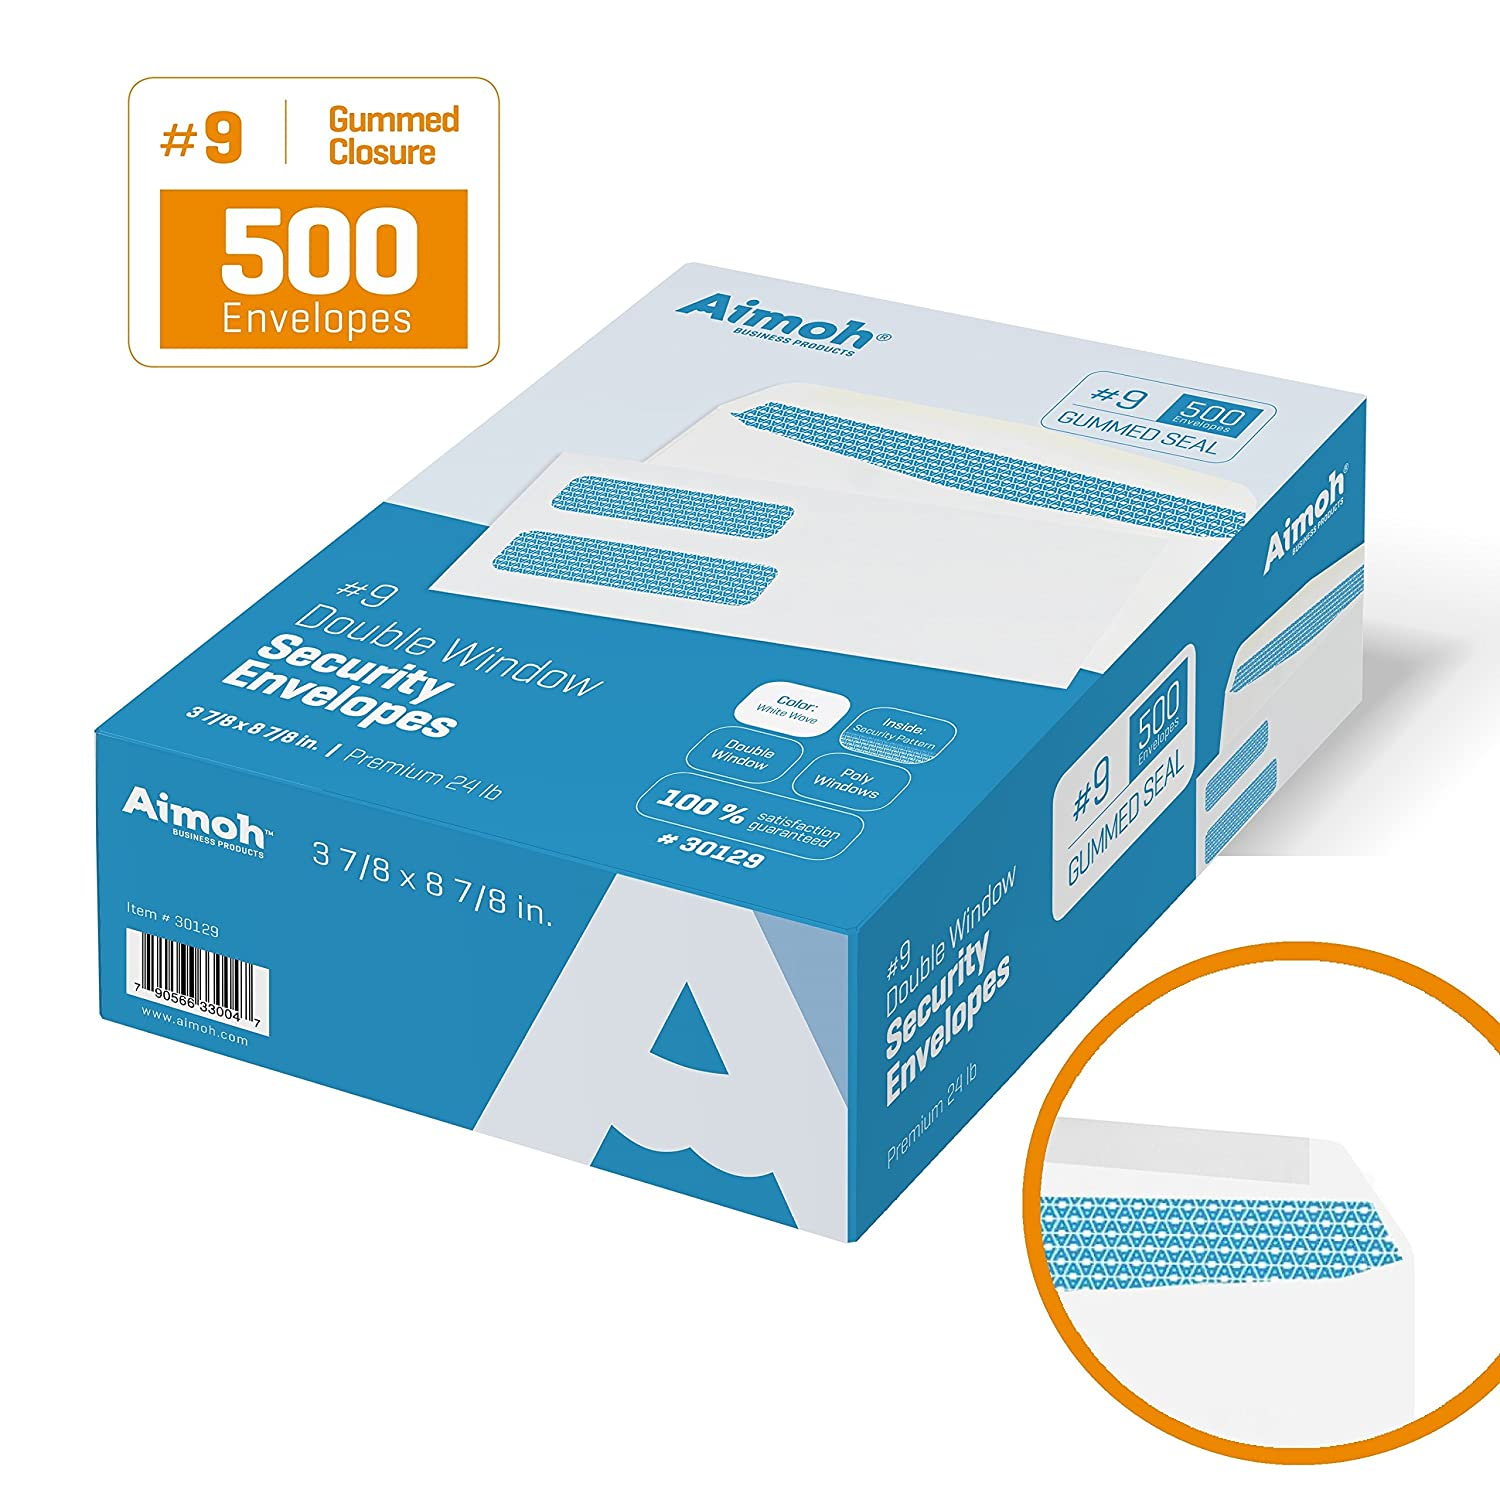 #9 Double Window Security Business Mailing Envelopes for Invoices, Statements and Legal Documents - GUMMED Closure, Security Tinted - Size 3-7/8 x 8-7/8 - White - 24 LB - 500 Count (30129)